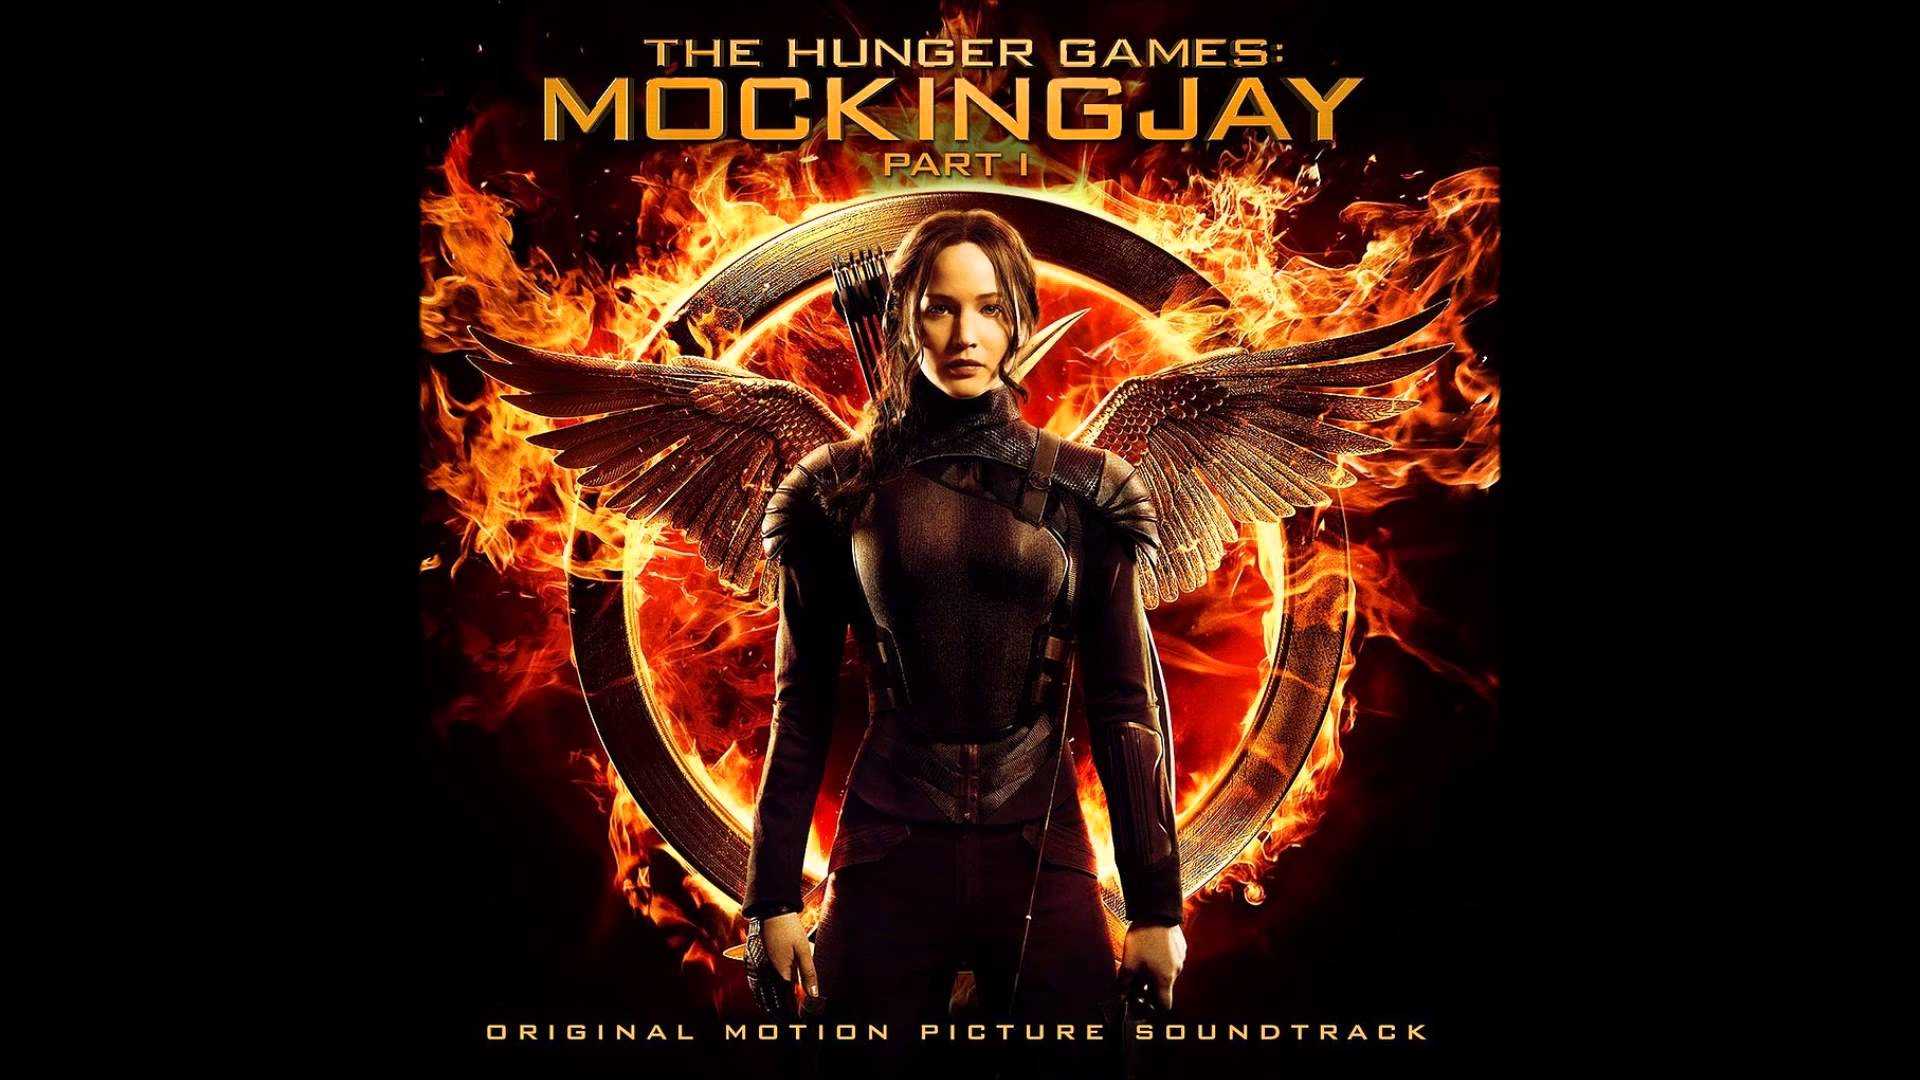 Lorde - Ladder Song (The Hunger Games: Mockingjay part 1) AUDIO HD